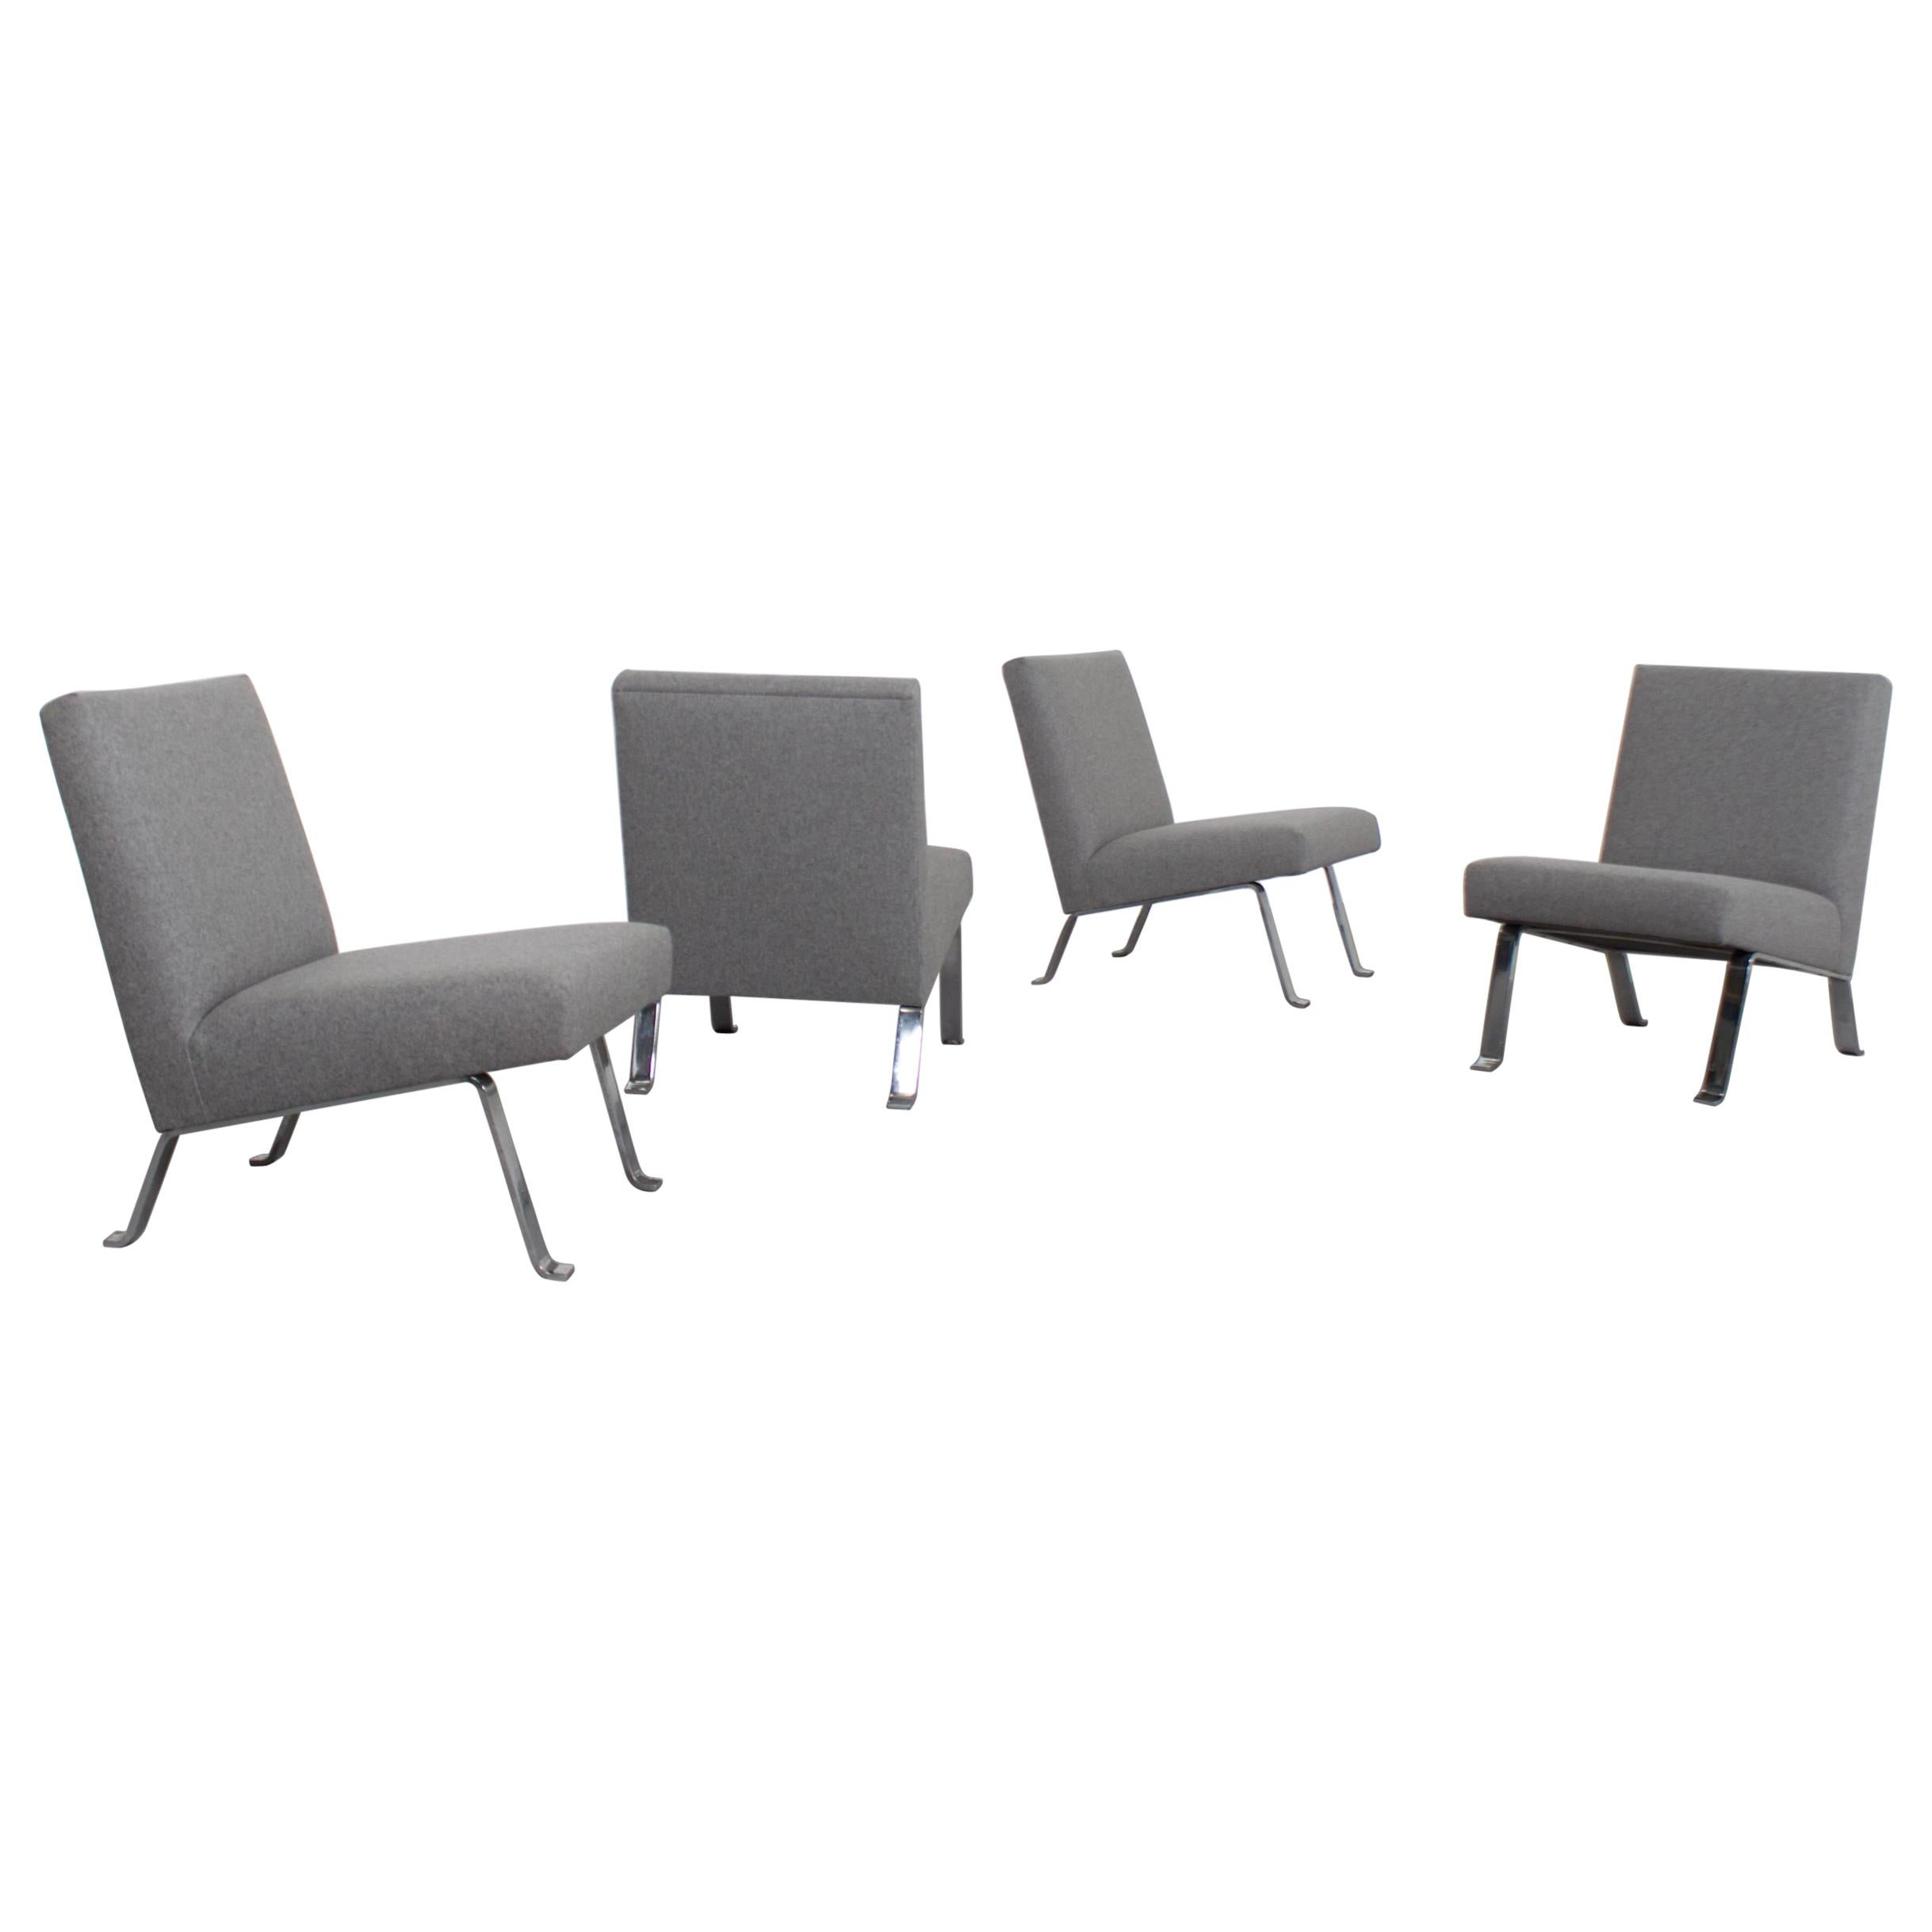 Four Chairs by Joseph Andre Motte, France, 1950s